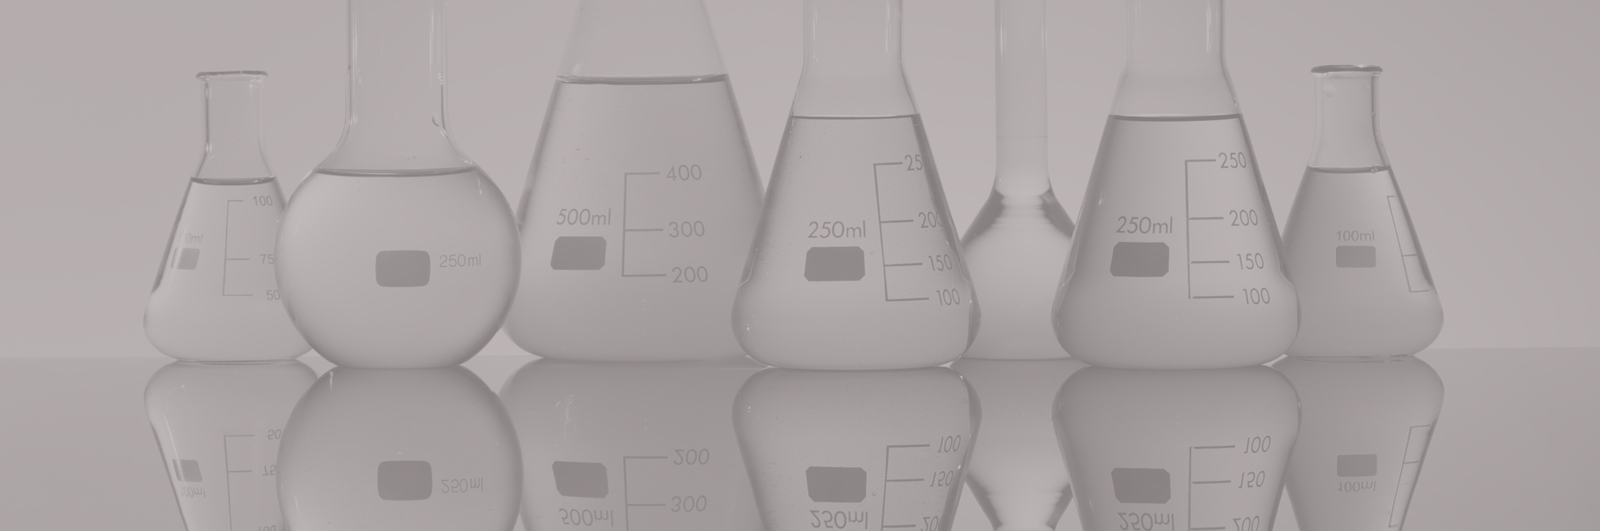 Beakers. Photo credit: pedrosala / iStock